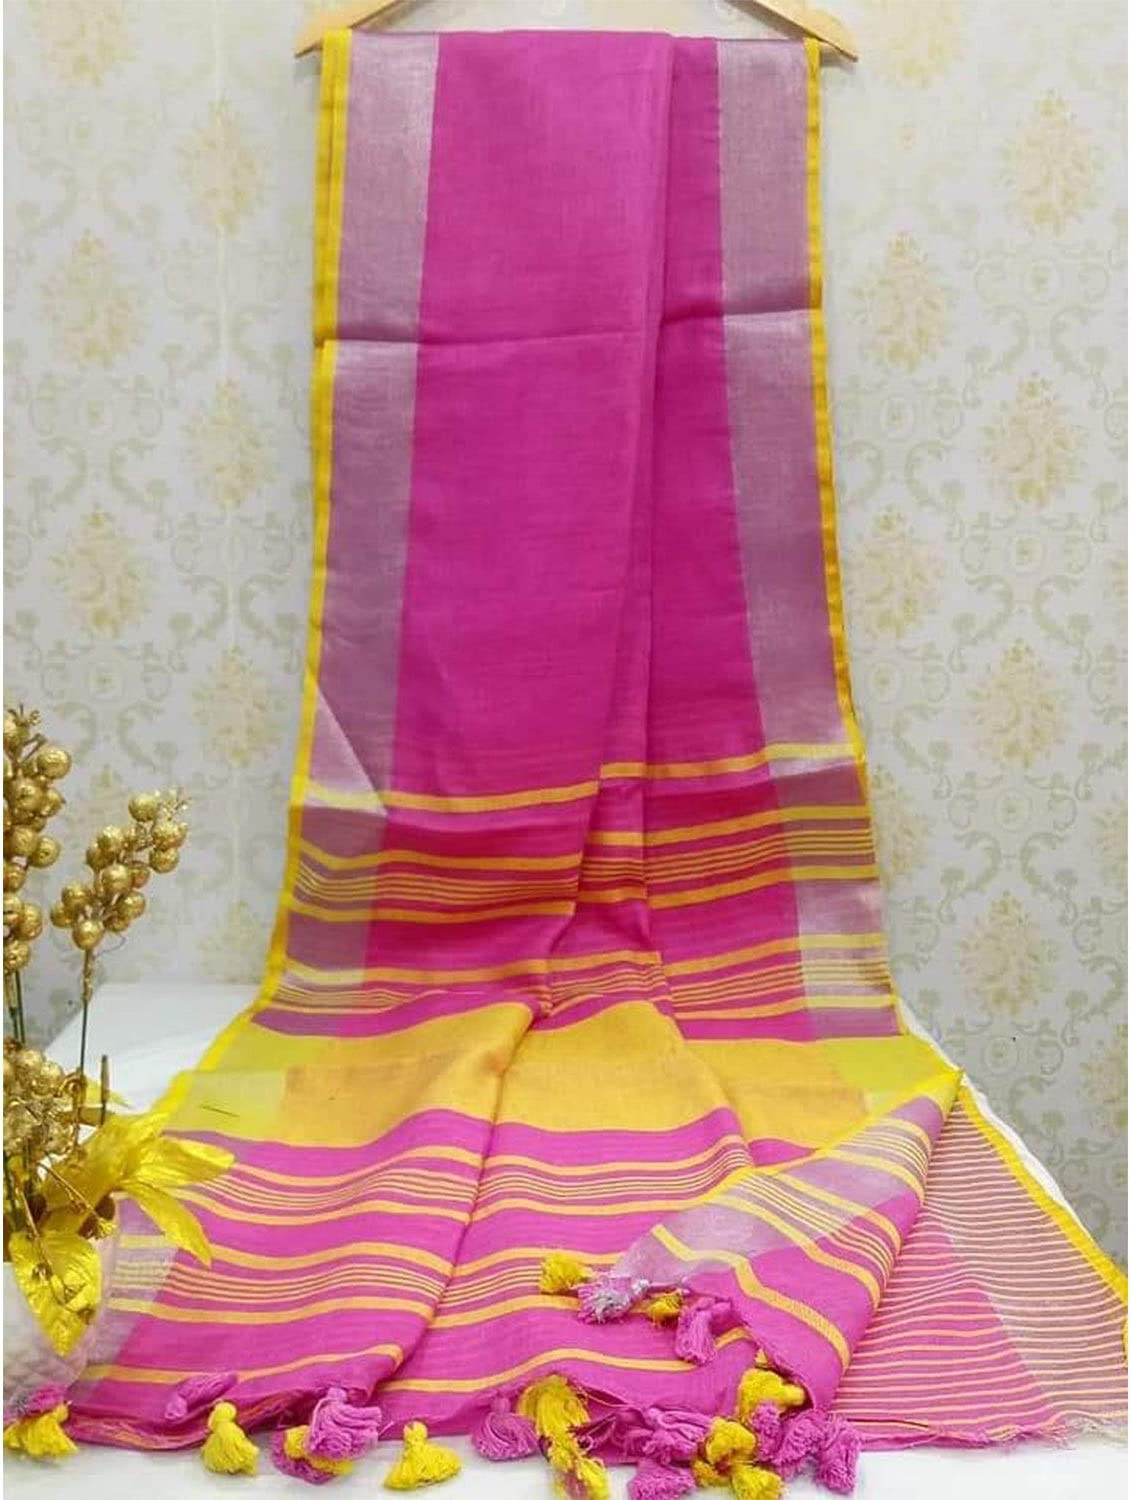 Ethnic Indian Womens Bhagalpuri Handloom Cotton Linen Saree with Pink Yellow Border with Beautifully Decorate Soft tussels